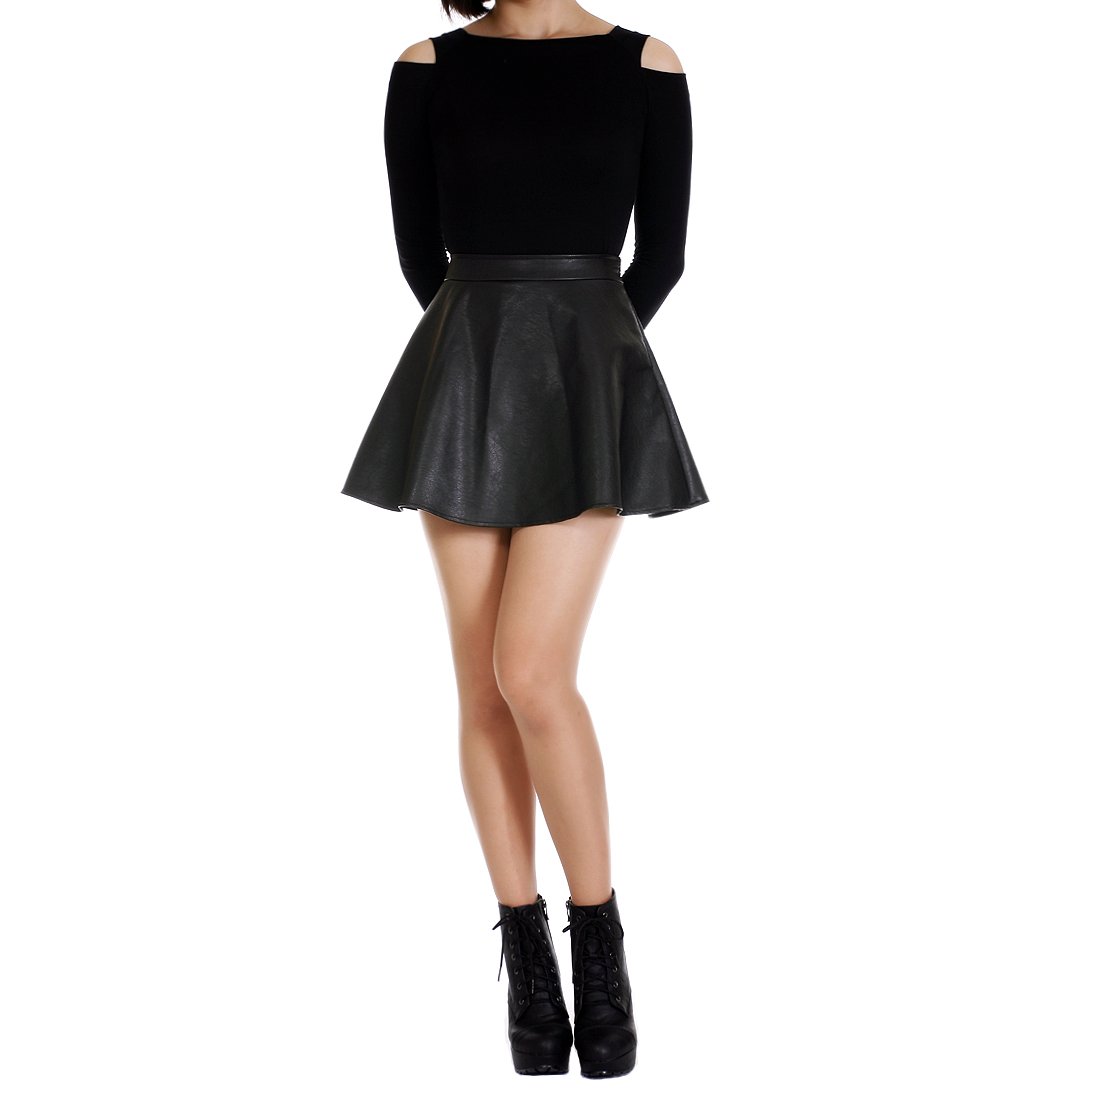 Chic Synthetic Leather Skater Skirt Dani's Choice